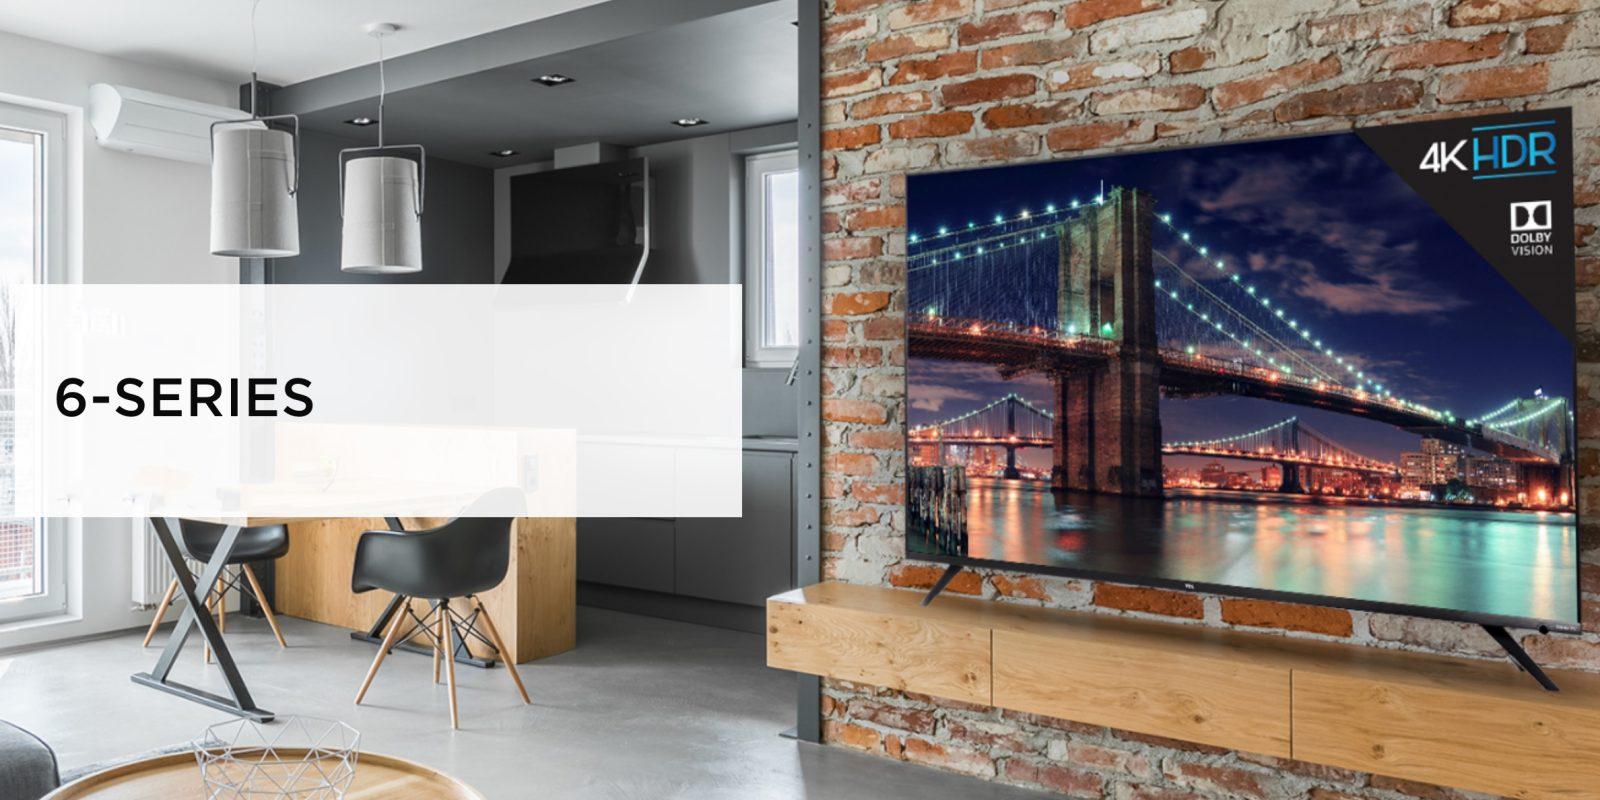 Add a TCL 65-inch 4K Dolby Vision TV to your setup: $493.50 (Refurb, Orig. $970)